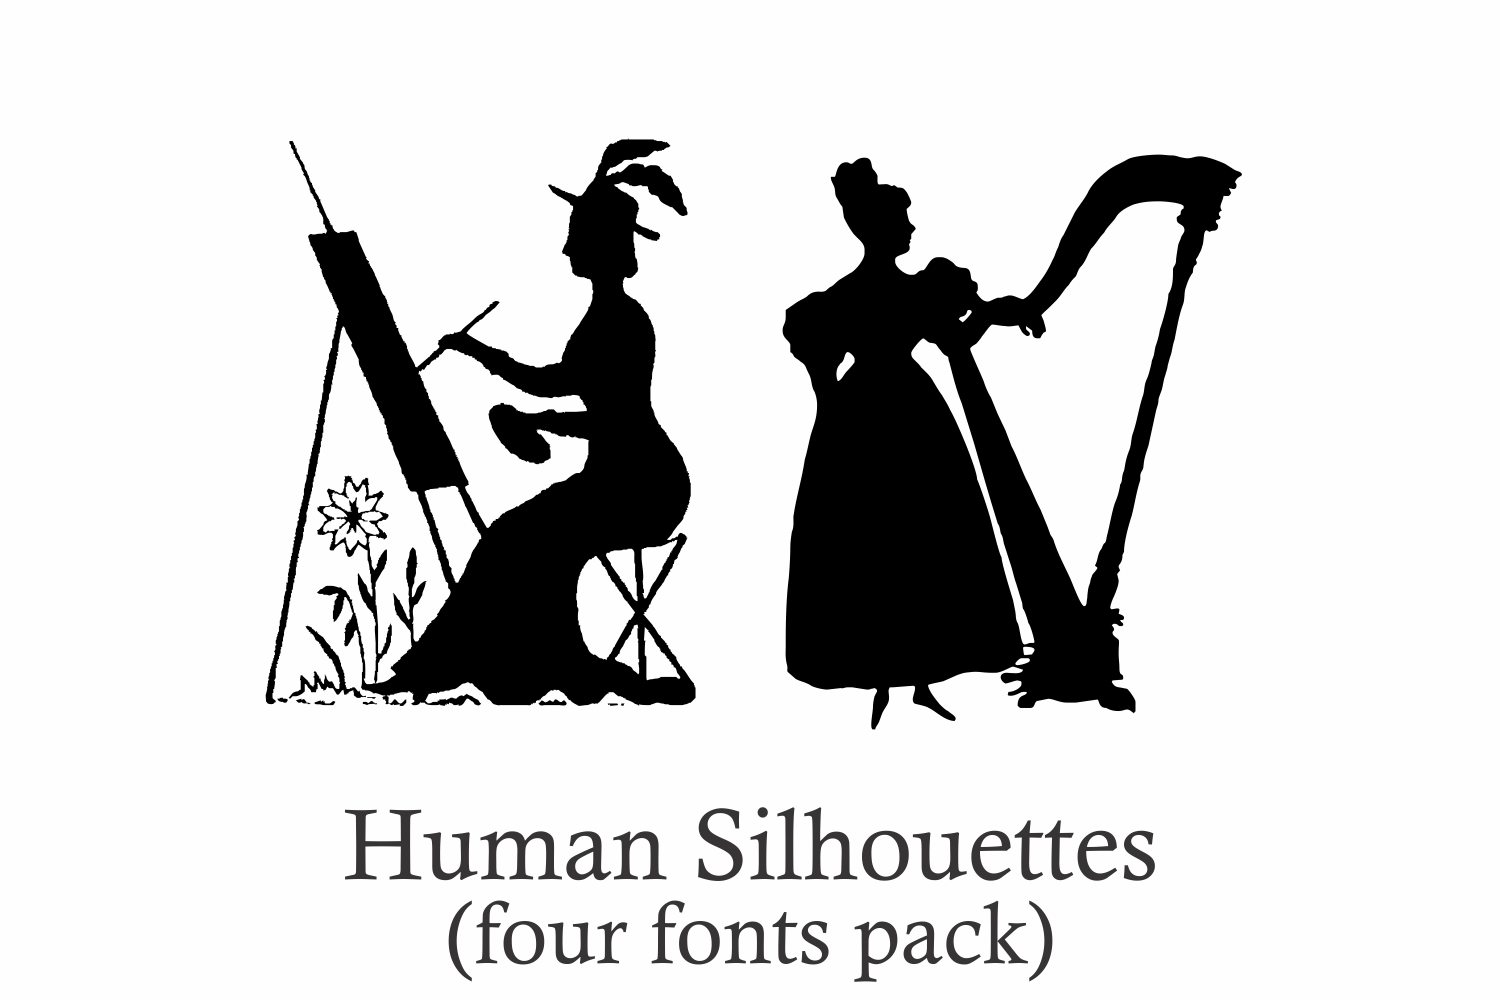 Human Silhouettes Pack - 4 Fonts example image 2